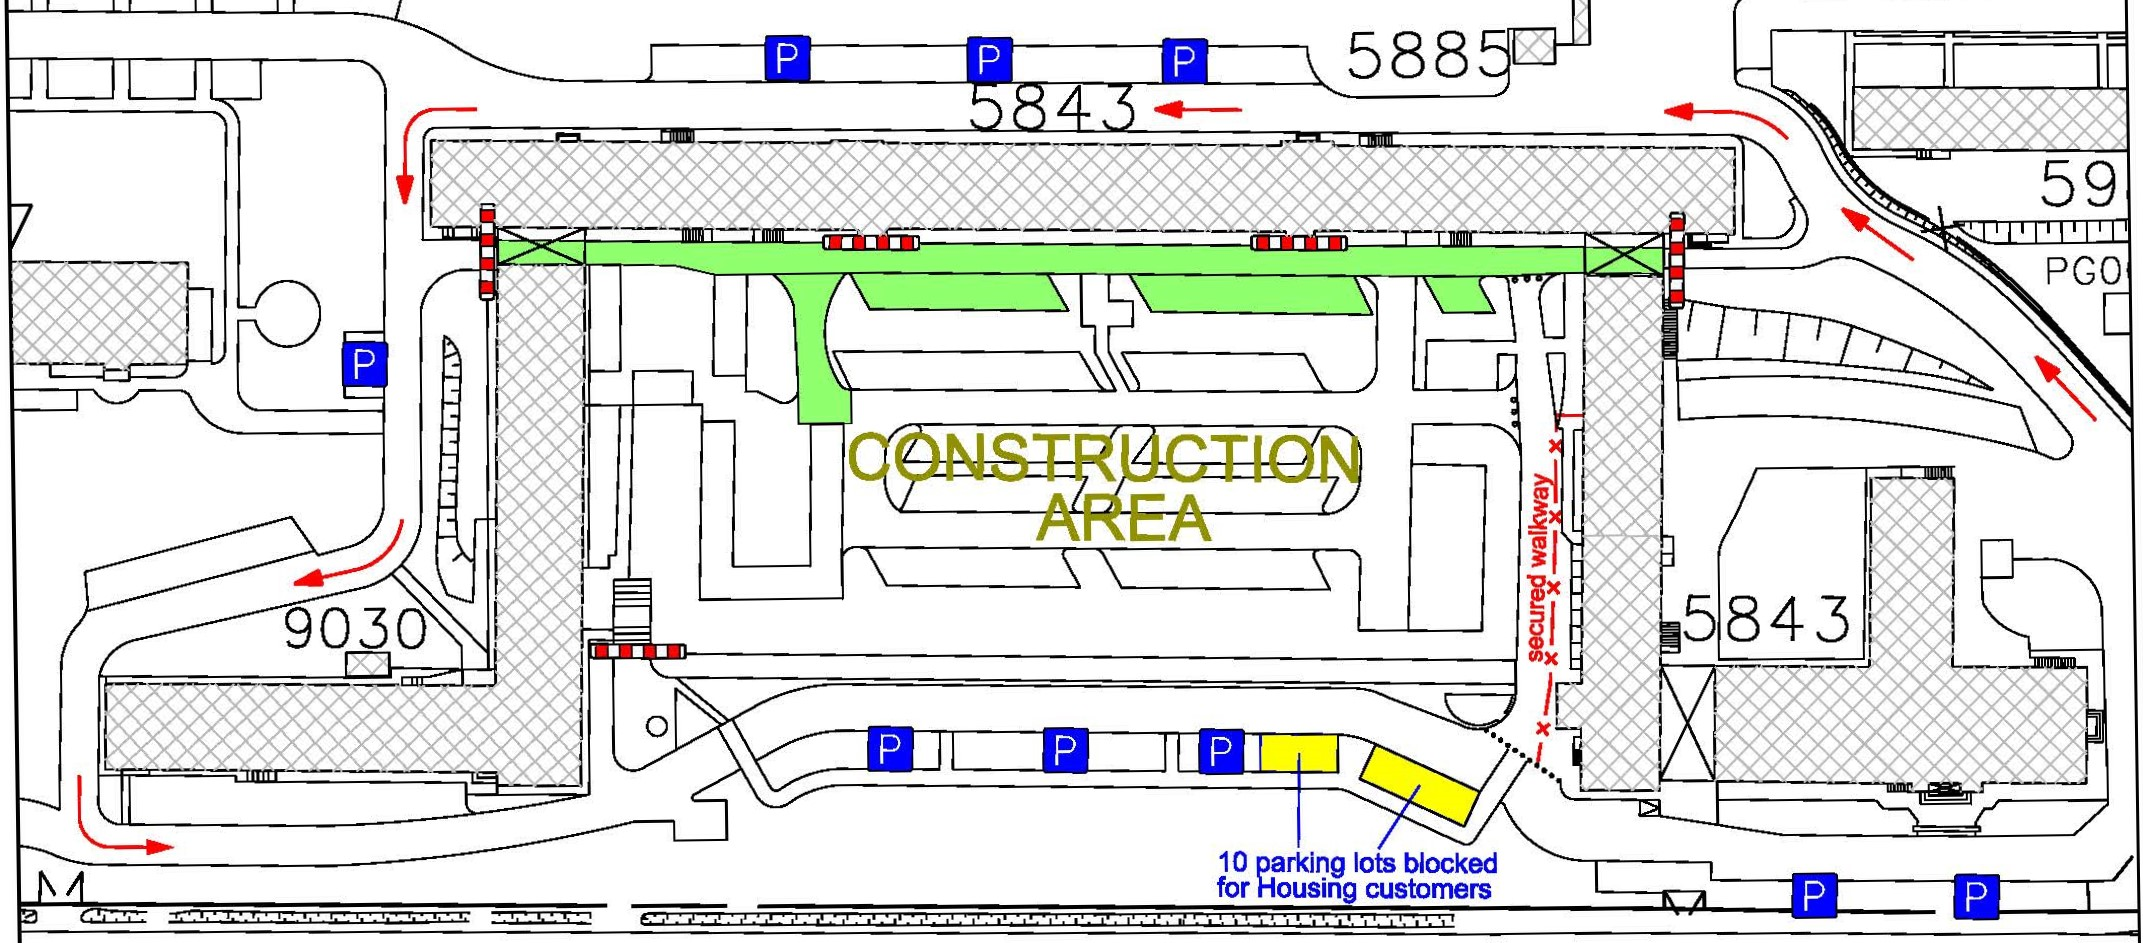 CONSTRUCTION: DPW parking lot at Bismarck Kaserne to close during road construction April 18 through June 9